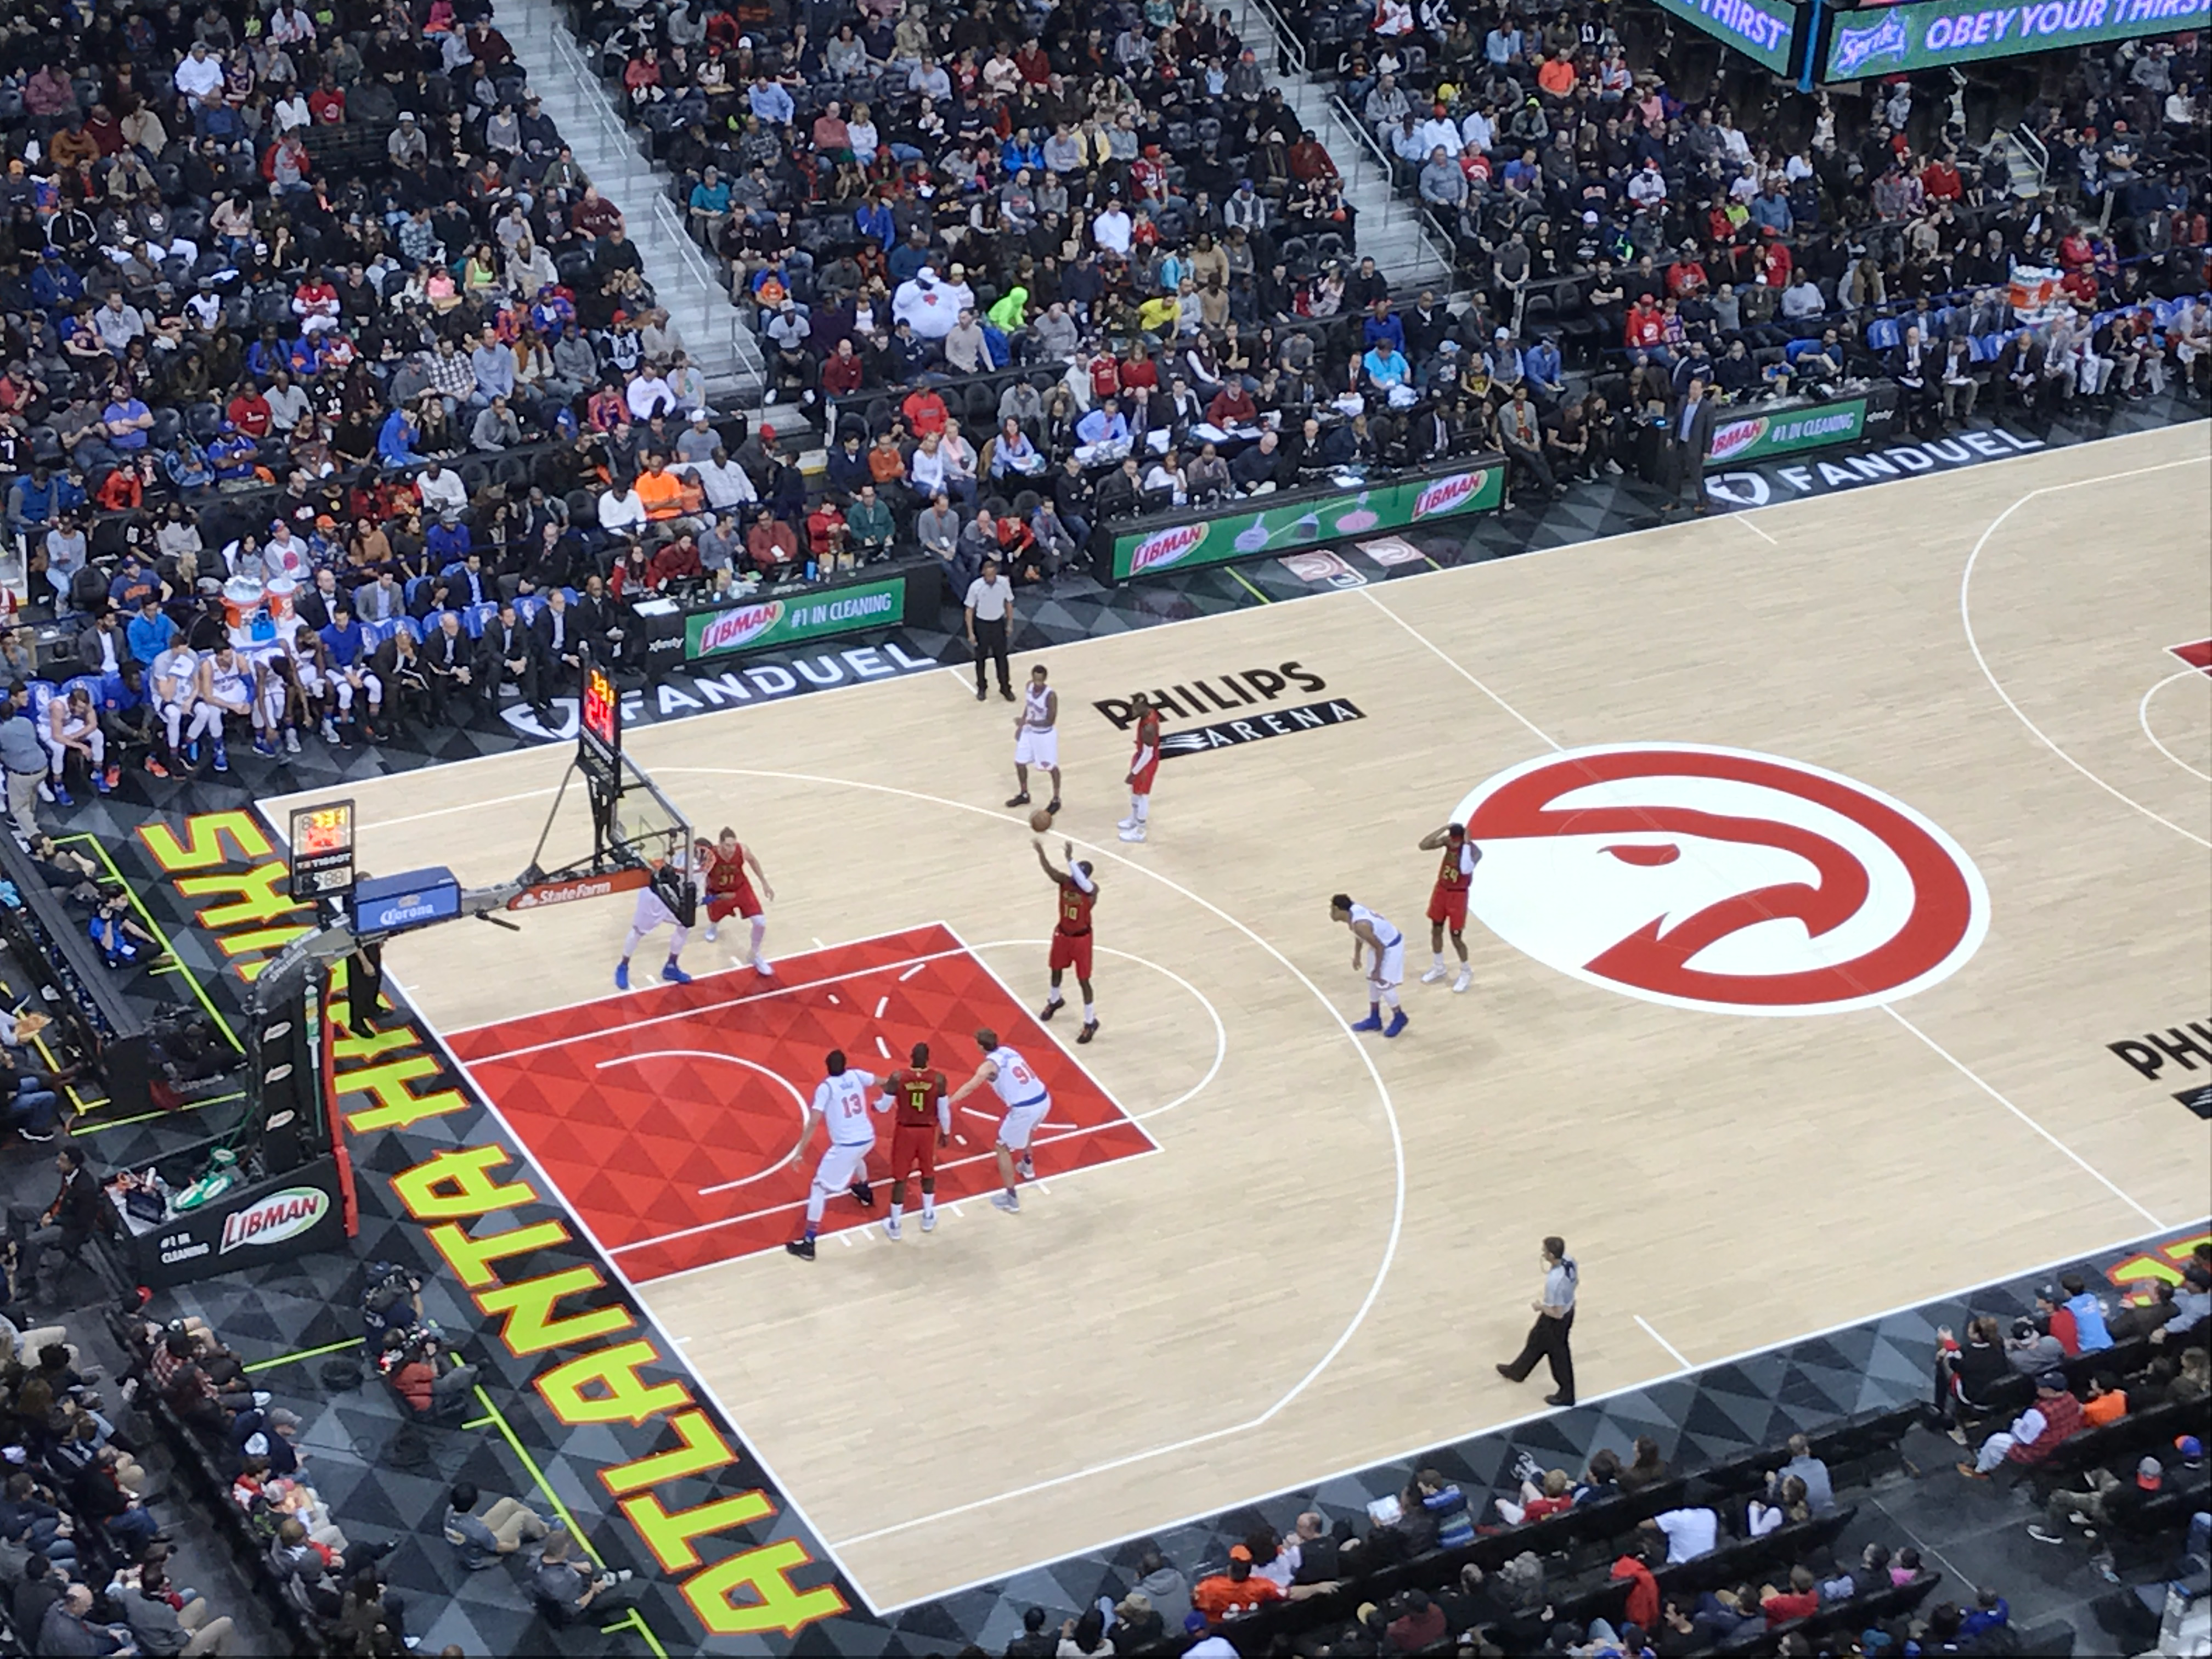 Hawks SG Tim Hardaway Jr. steps up to the line to take a free throw. Hardaway's 19 points often came at big moments in the Hawk's dramatic win.